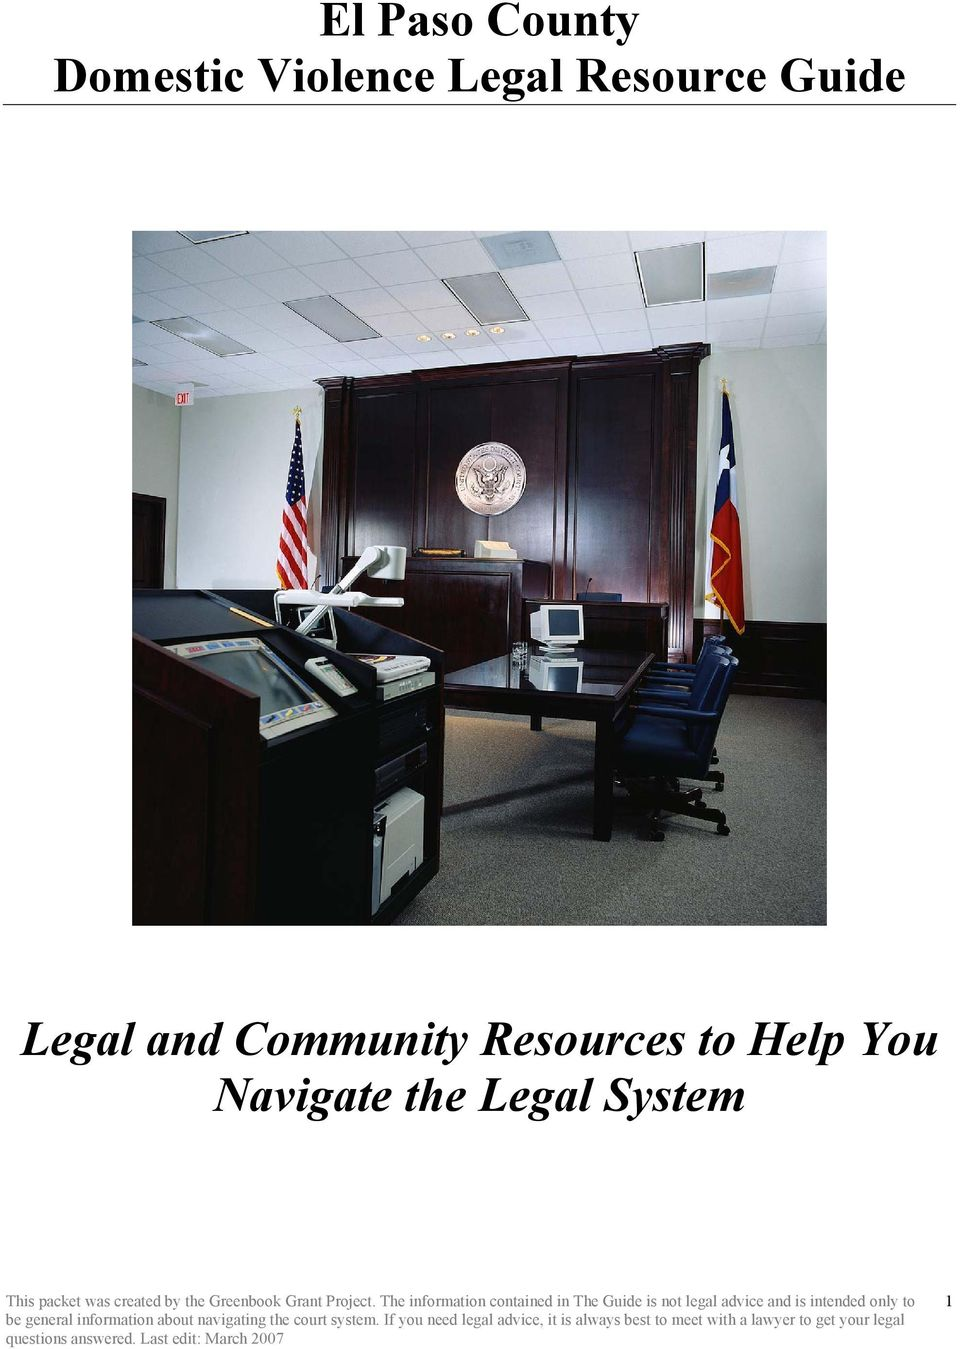 Legal and Community Resources